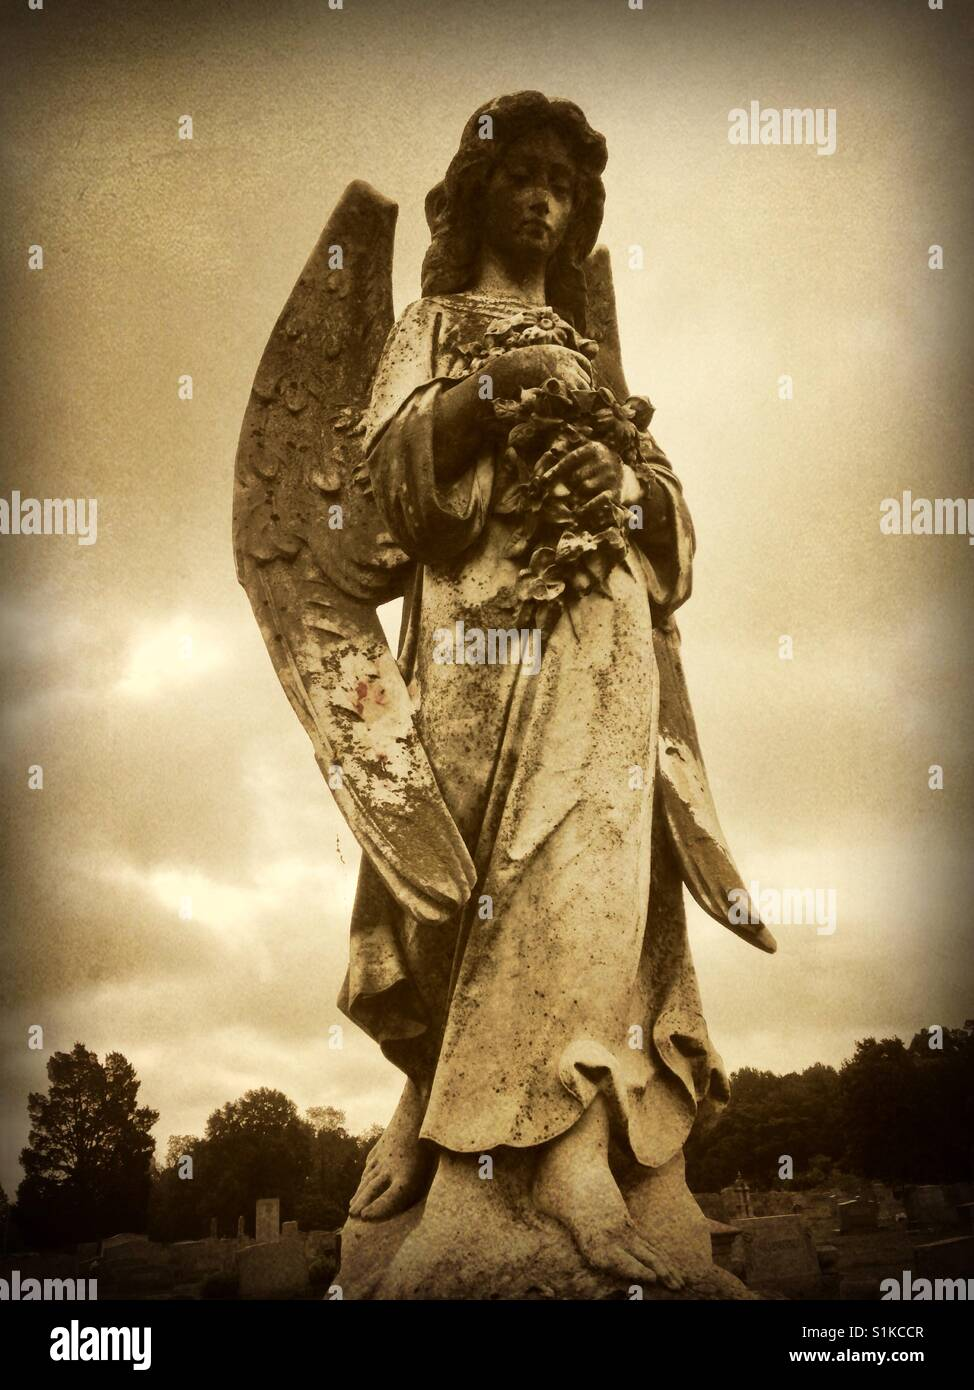 Angel with flower bouquet- grave marker in North Carolina - Stock Image